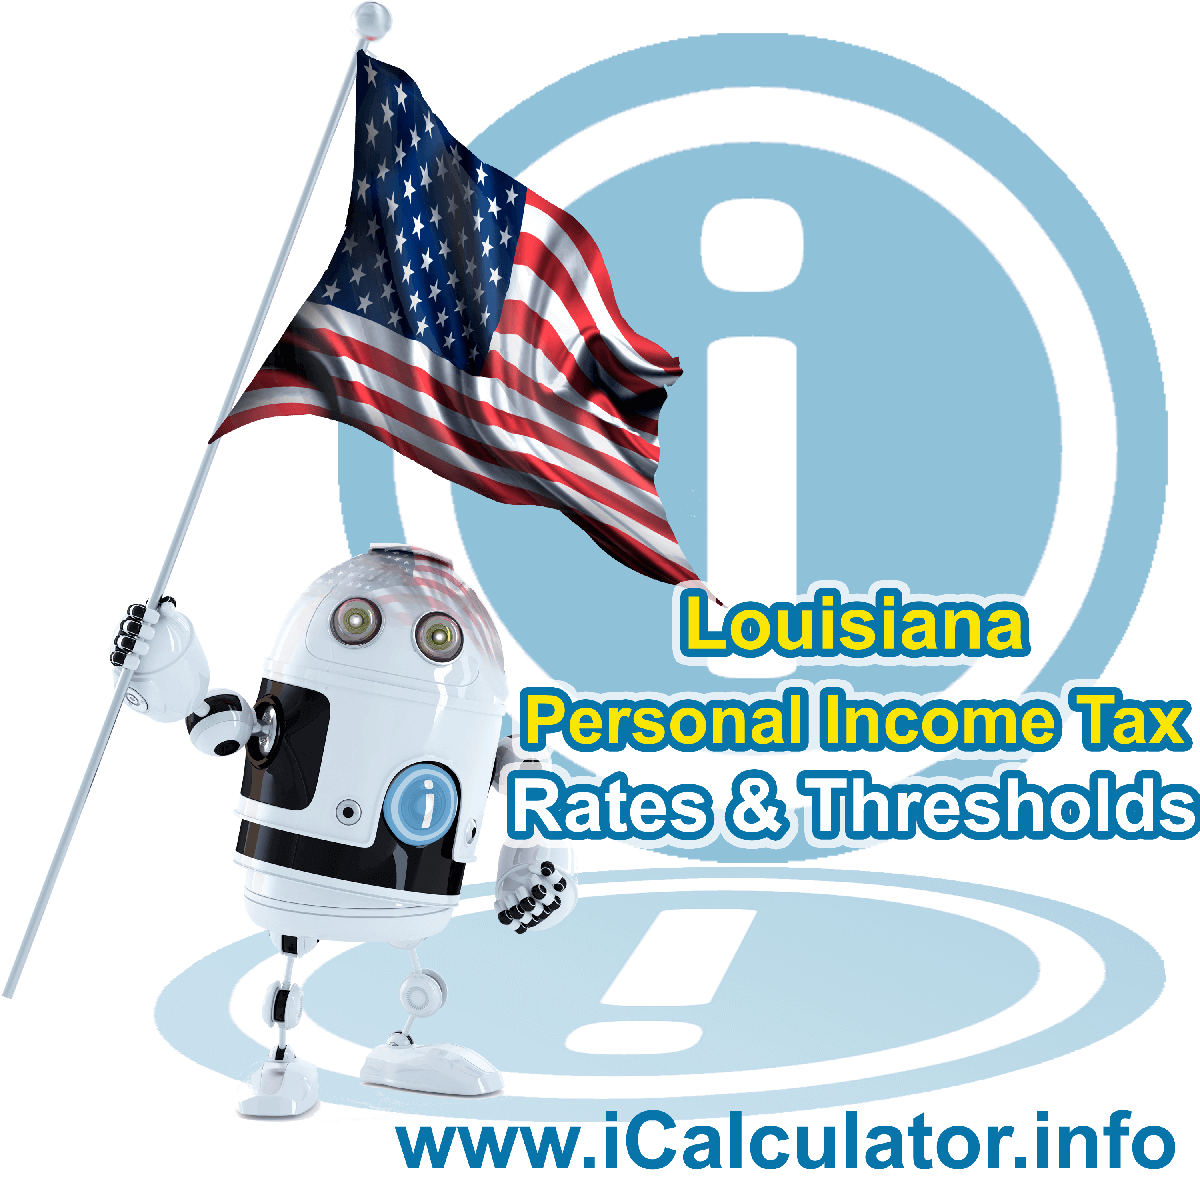 Louisiana State Tax Tables 2020. This image displays details of the Louisiana State Tax Tables for the 2020 tax return year which is provided in support of the 2020 US Tax Calculator